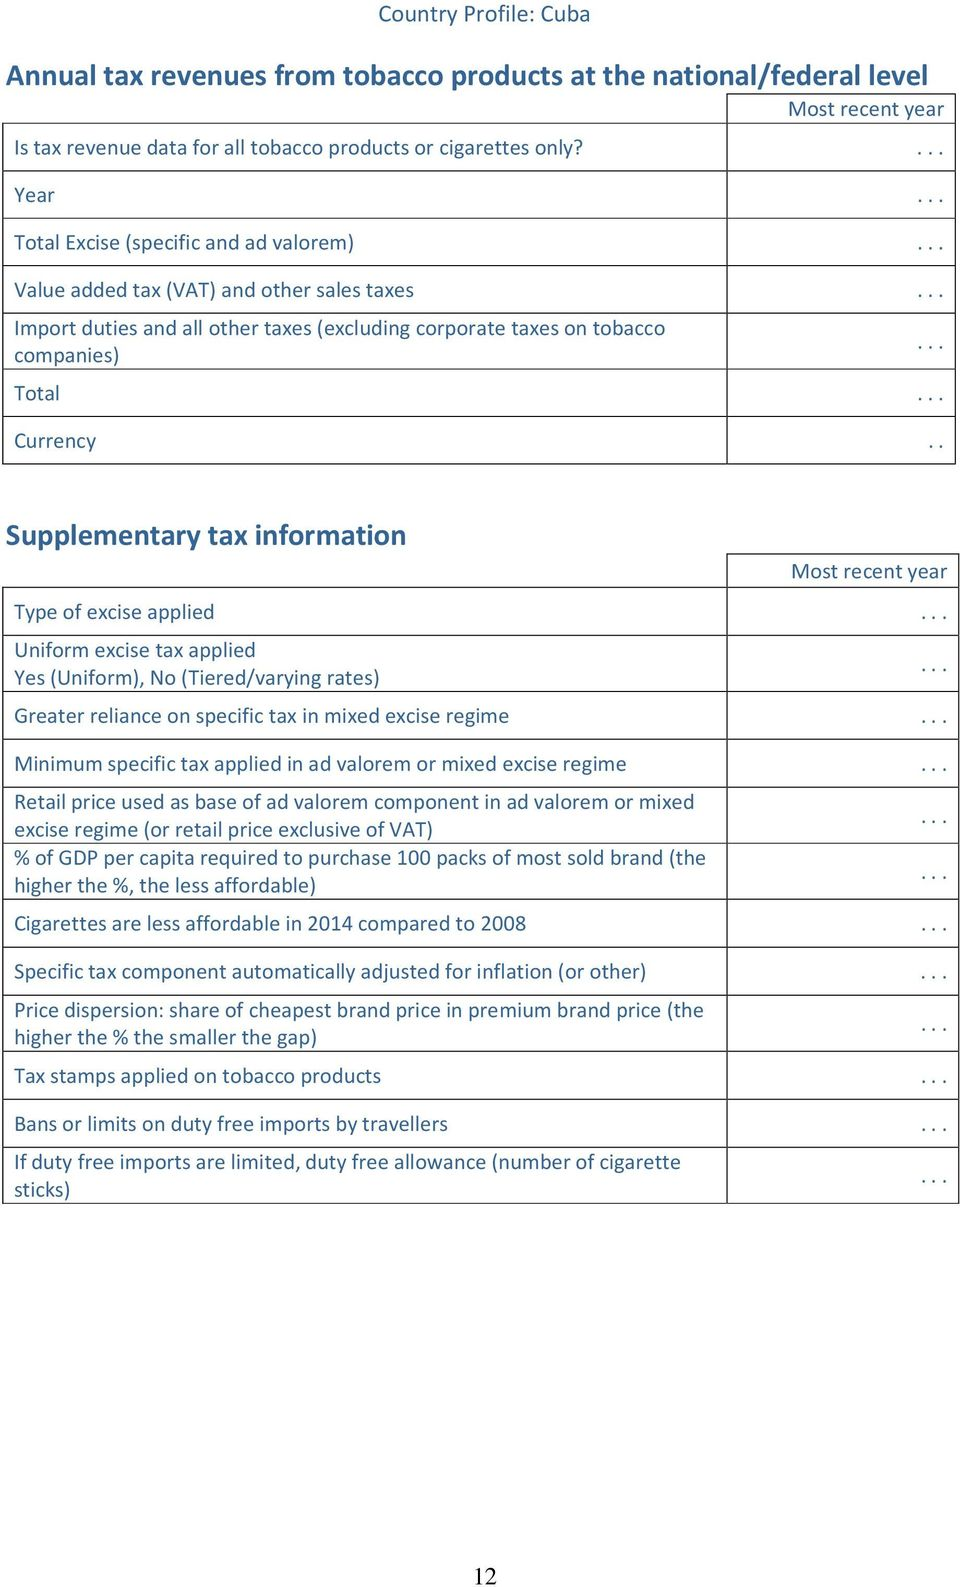 .... Supplementary tax information Most recent year Type of excise applied... Uniform excise tax applied (Uniform), (Tiered/varying rates) Greater reliance on specific tax in mixed excise regime.